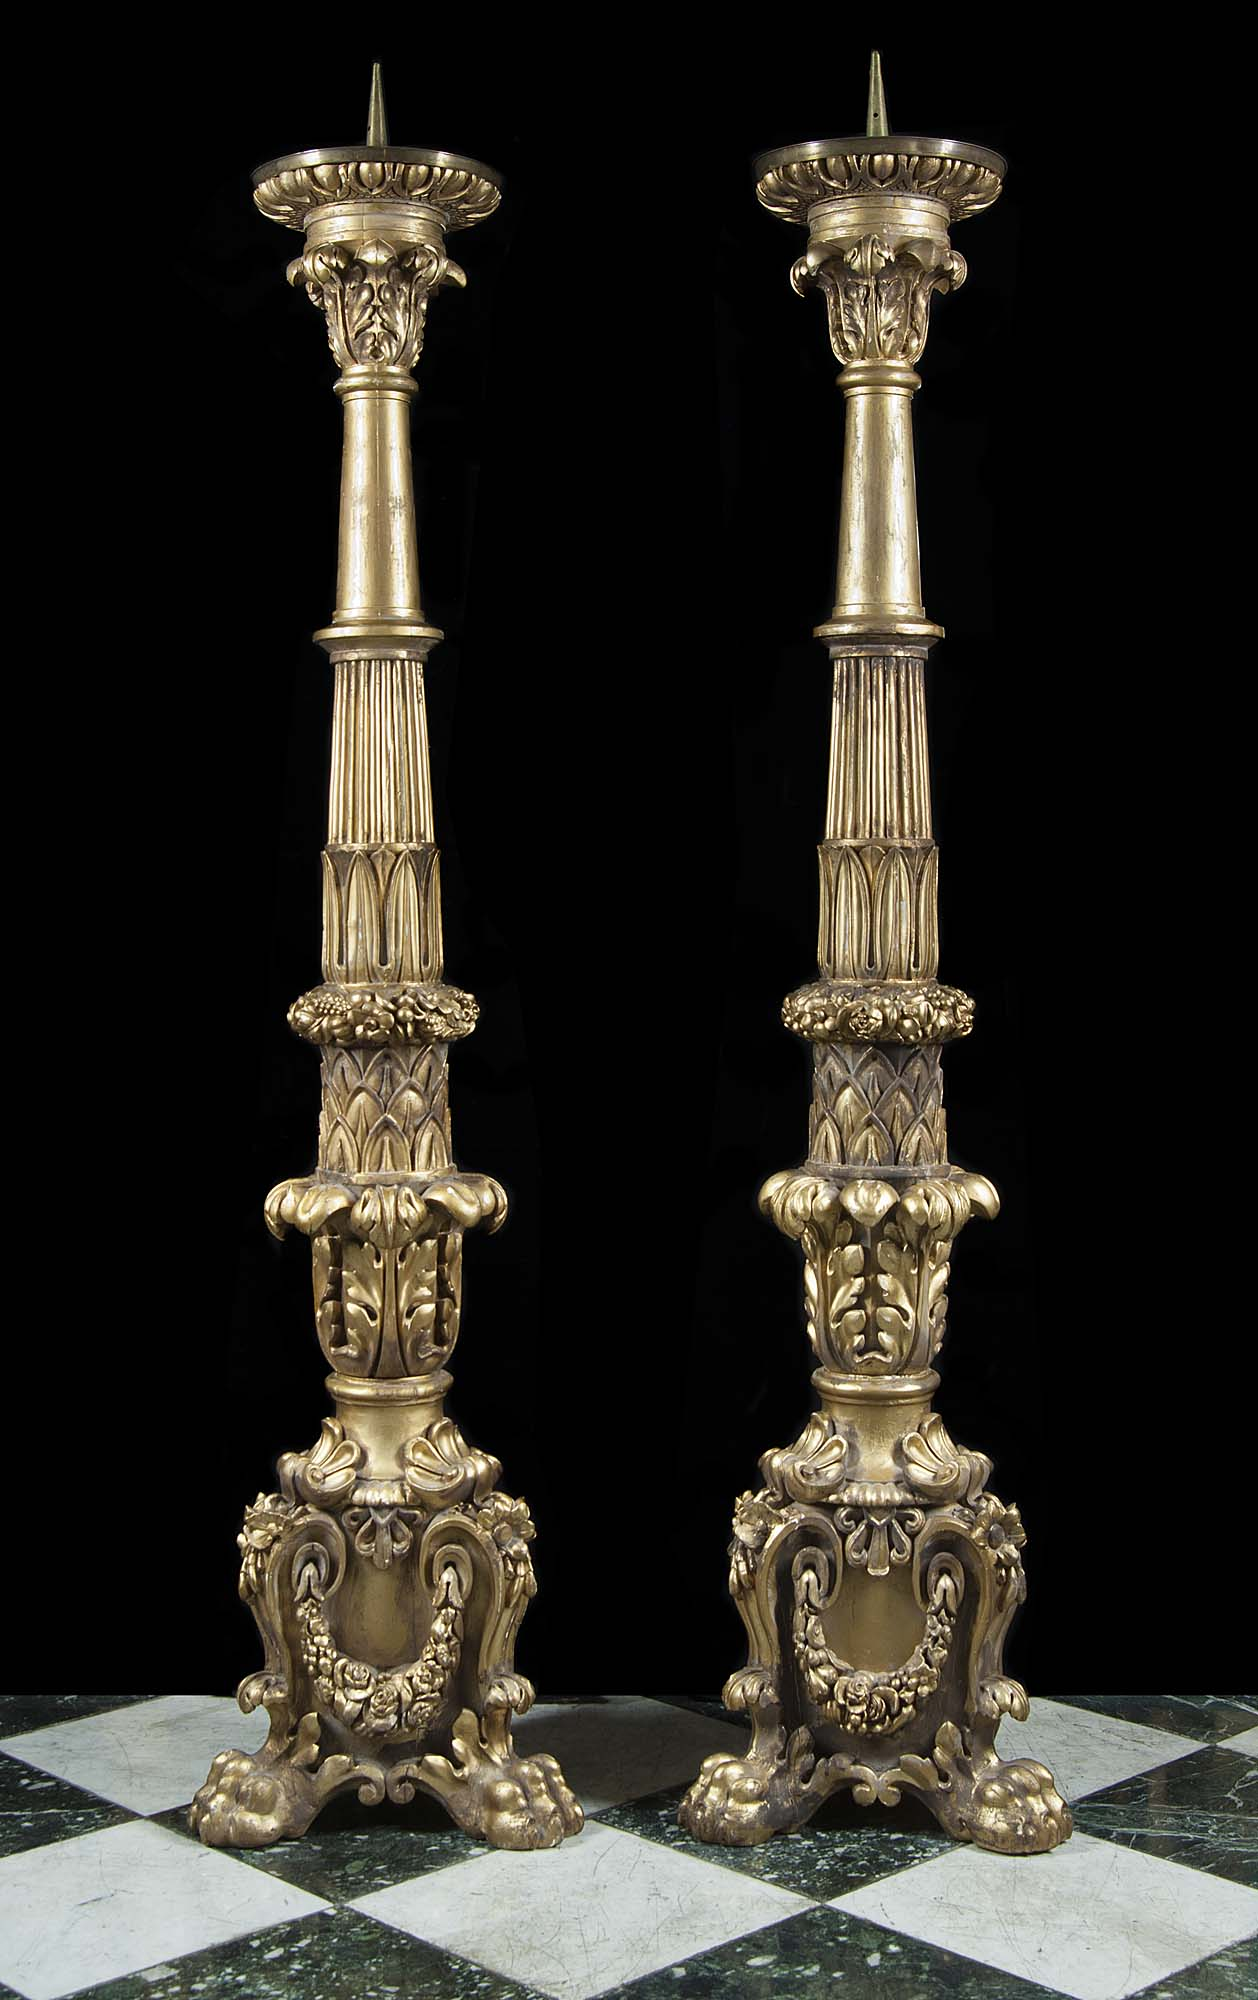 A pair of massive gilt wood Baroque style candlesticks